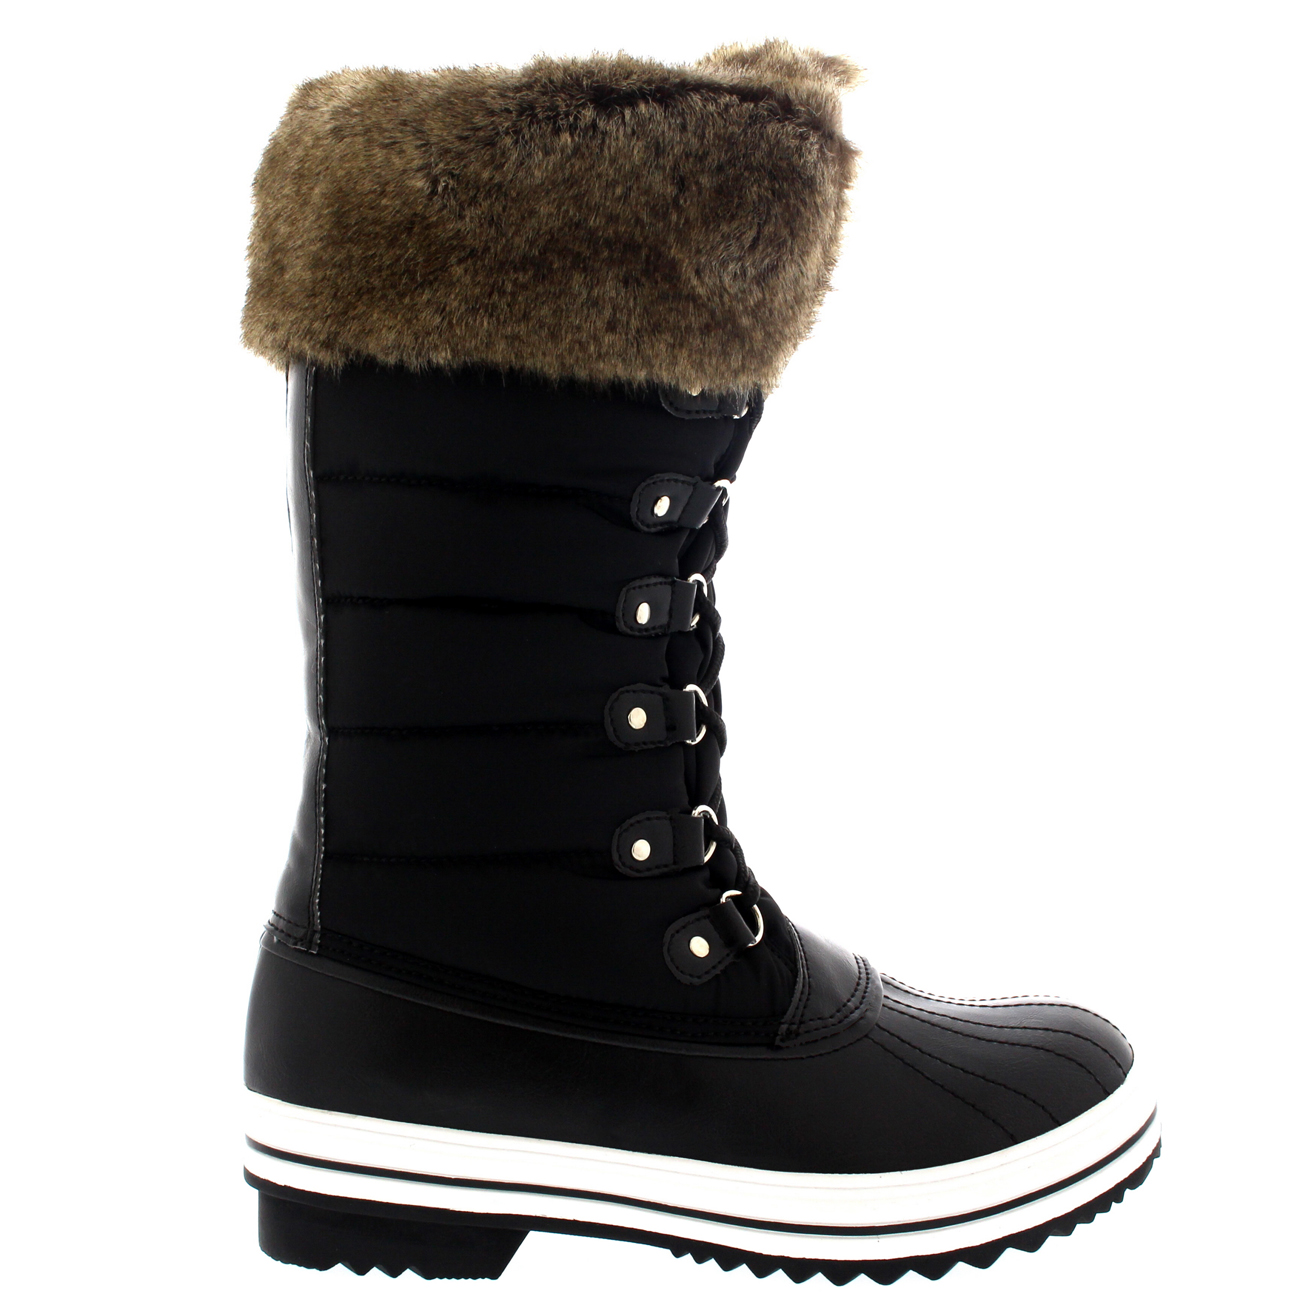 Winter Muck Boots - Cr Boot